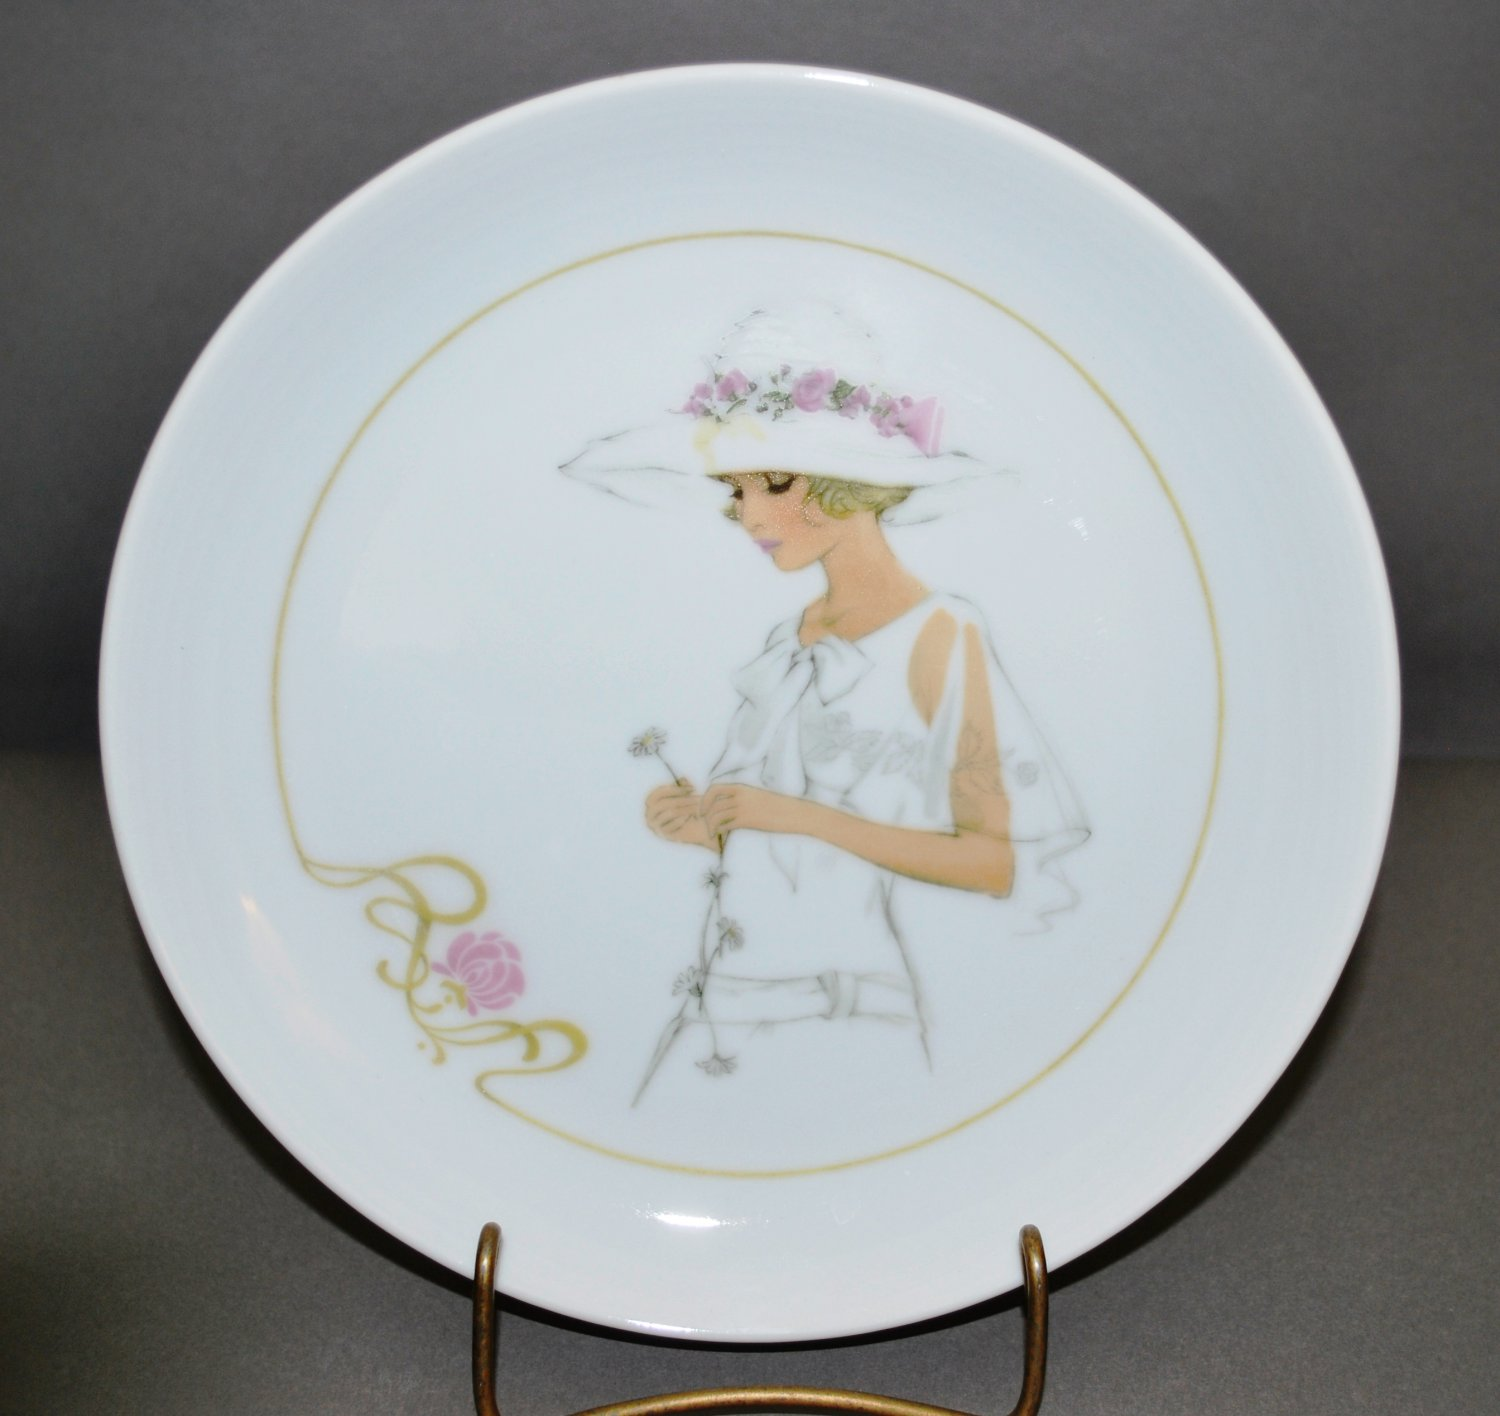 Blonde Girl Collector Plate by Enesco in Vintage White Dress Hat w/ Pink Roses